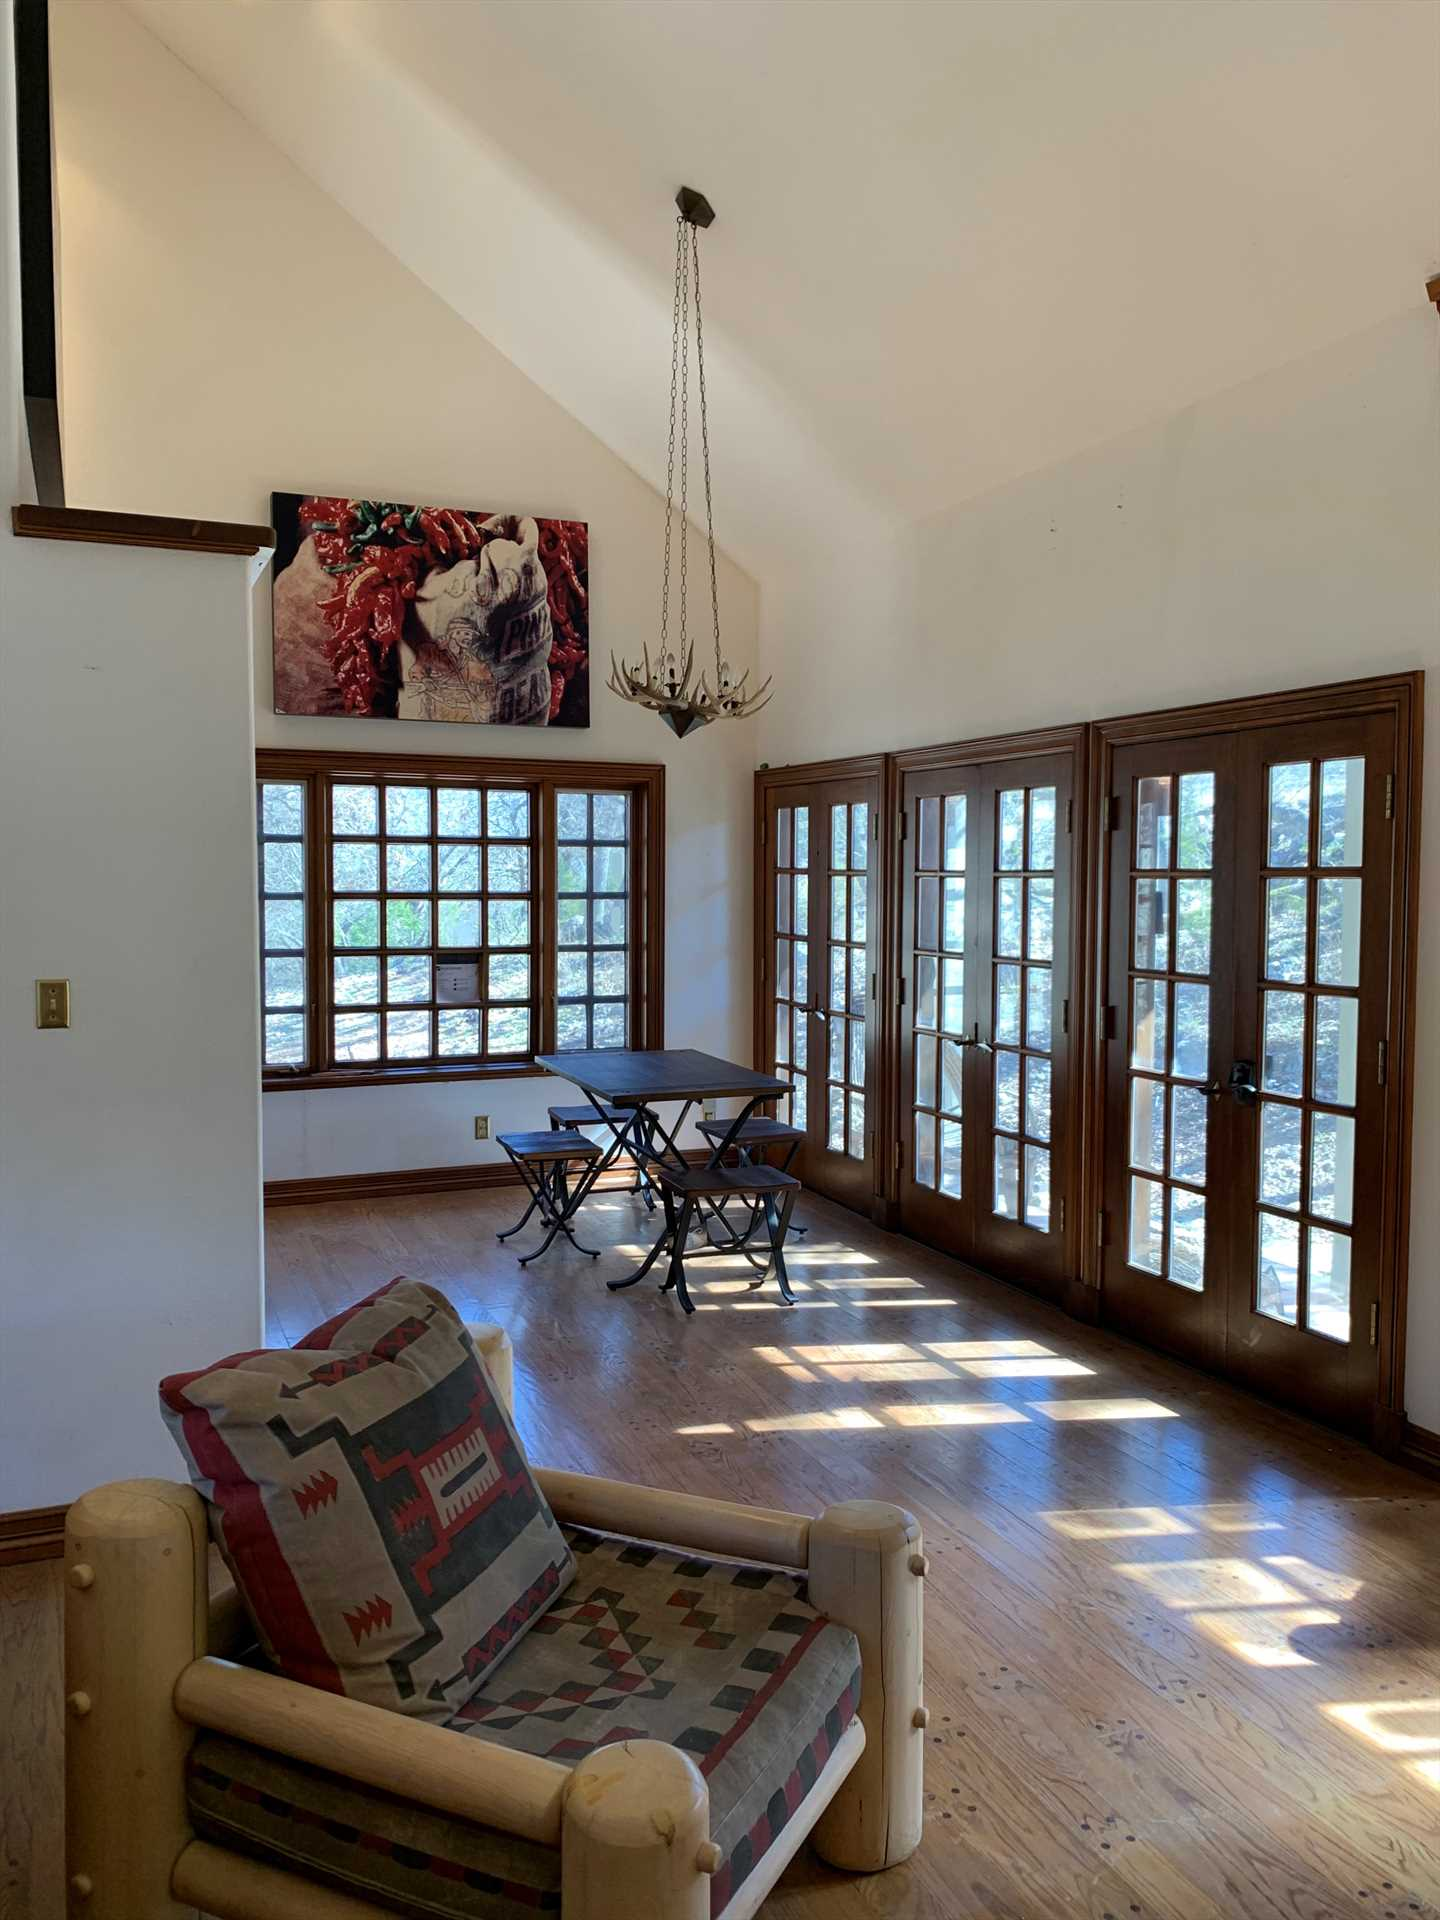 A generous amount of windows allow a flood of comforting natural light into the Casita's interior.